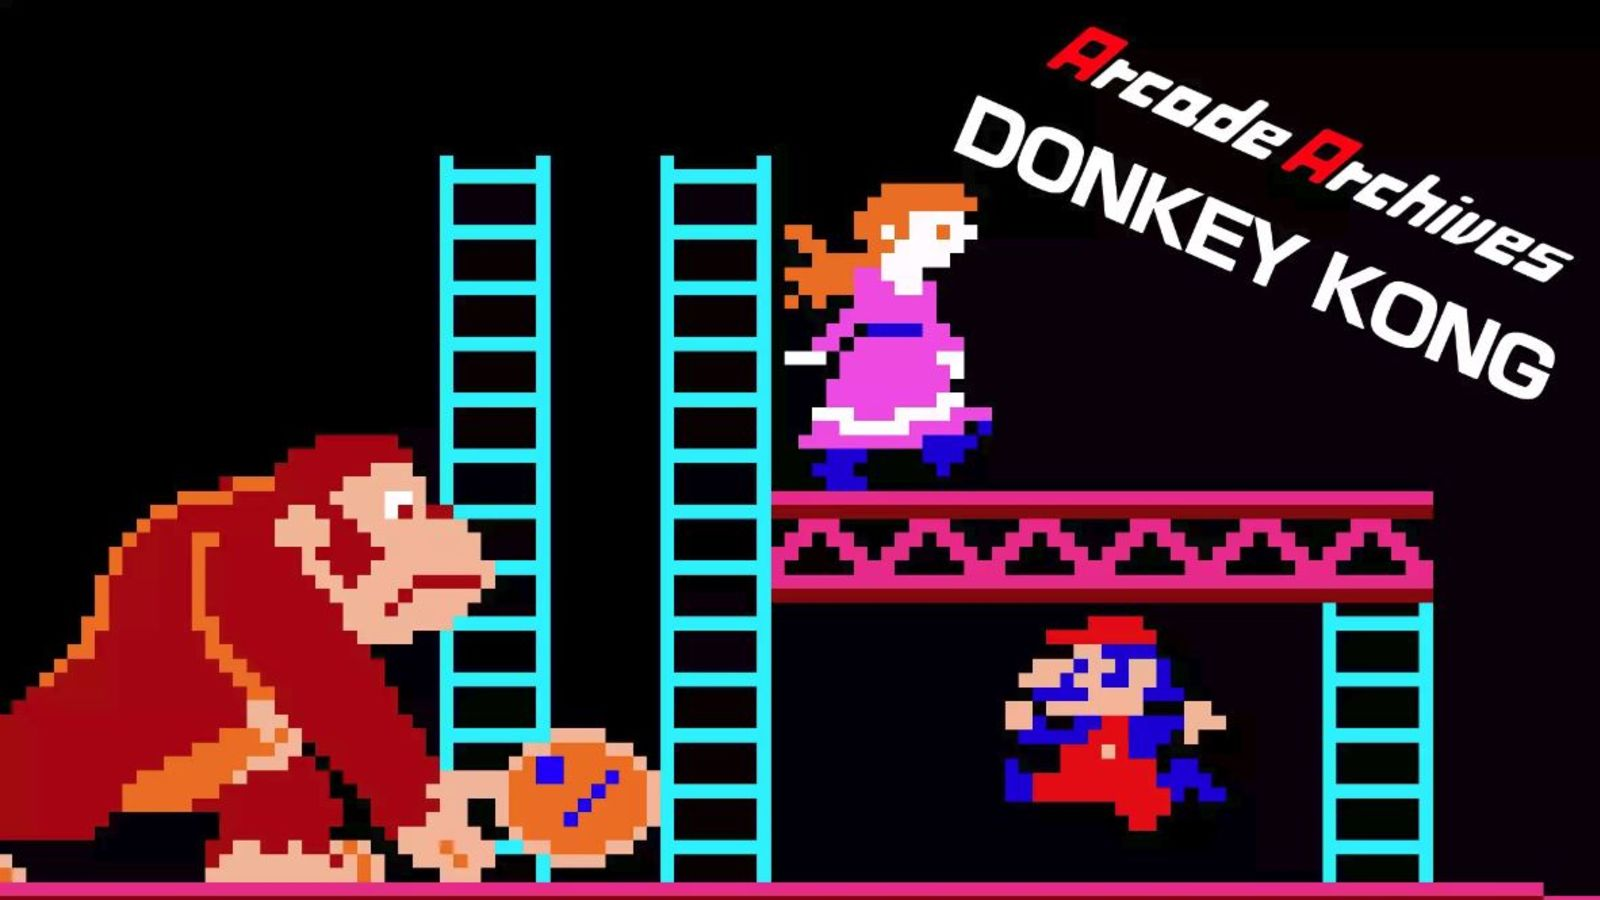 Donkey Kong 75 Videojuegos: Arcade Classic 'Donkey Kong' Comes To The Nintendo Switch